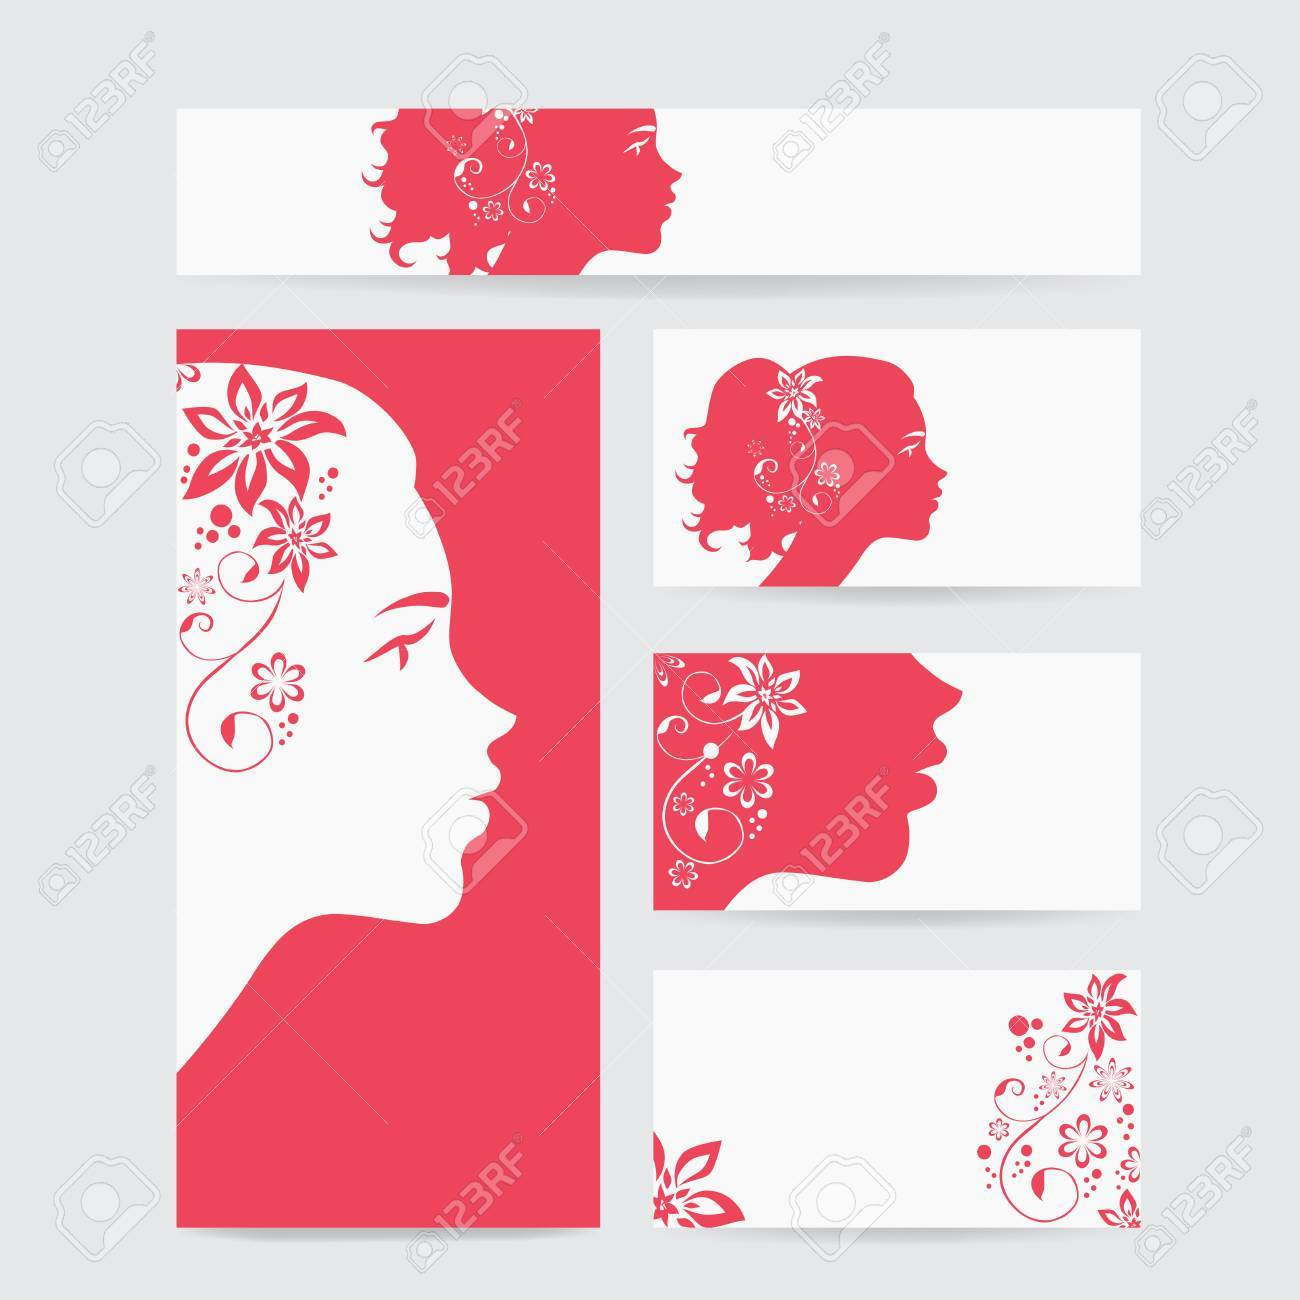 Business Cards With Woman Faces For Your Design. Cosmetics Shop ...